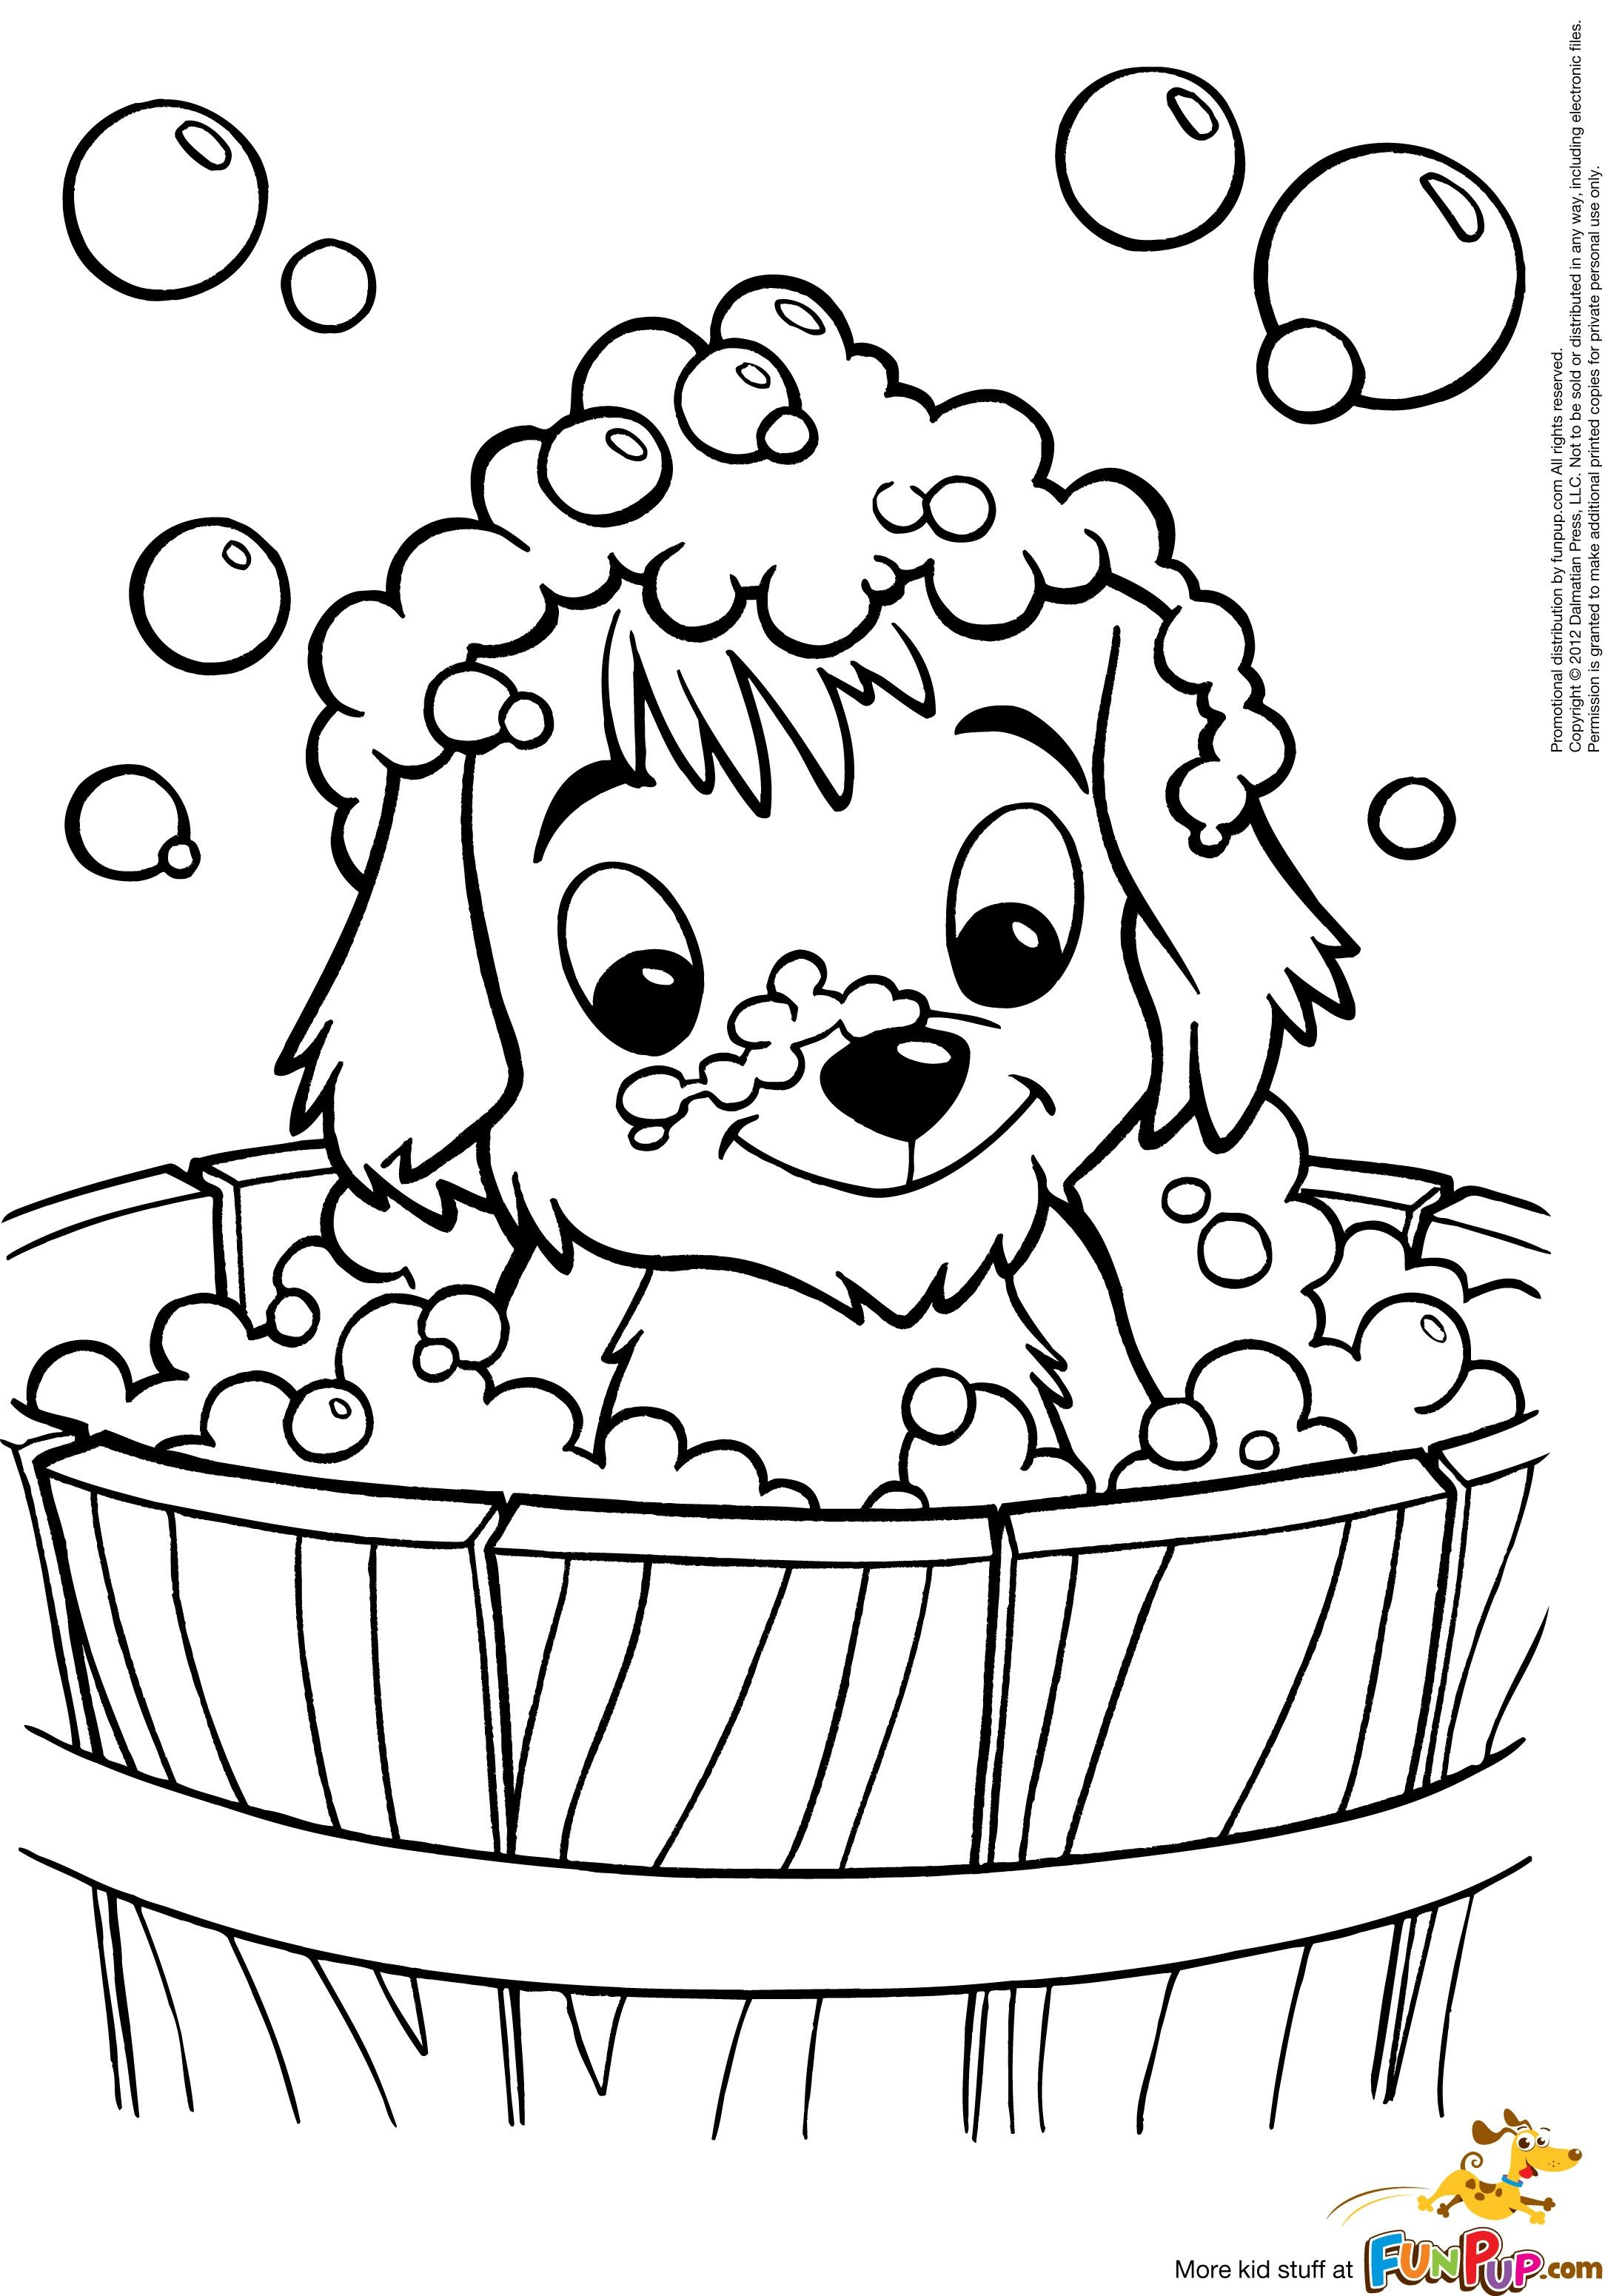 Cute Puppy Coloring Pages New Page   Kaleidoscope   Puppy